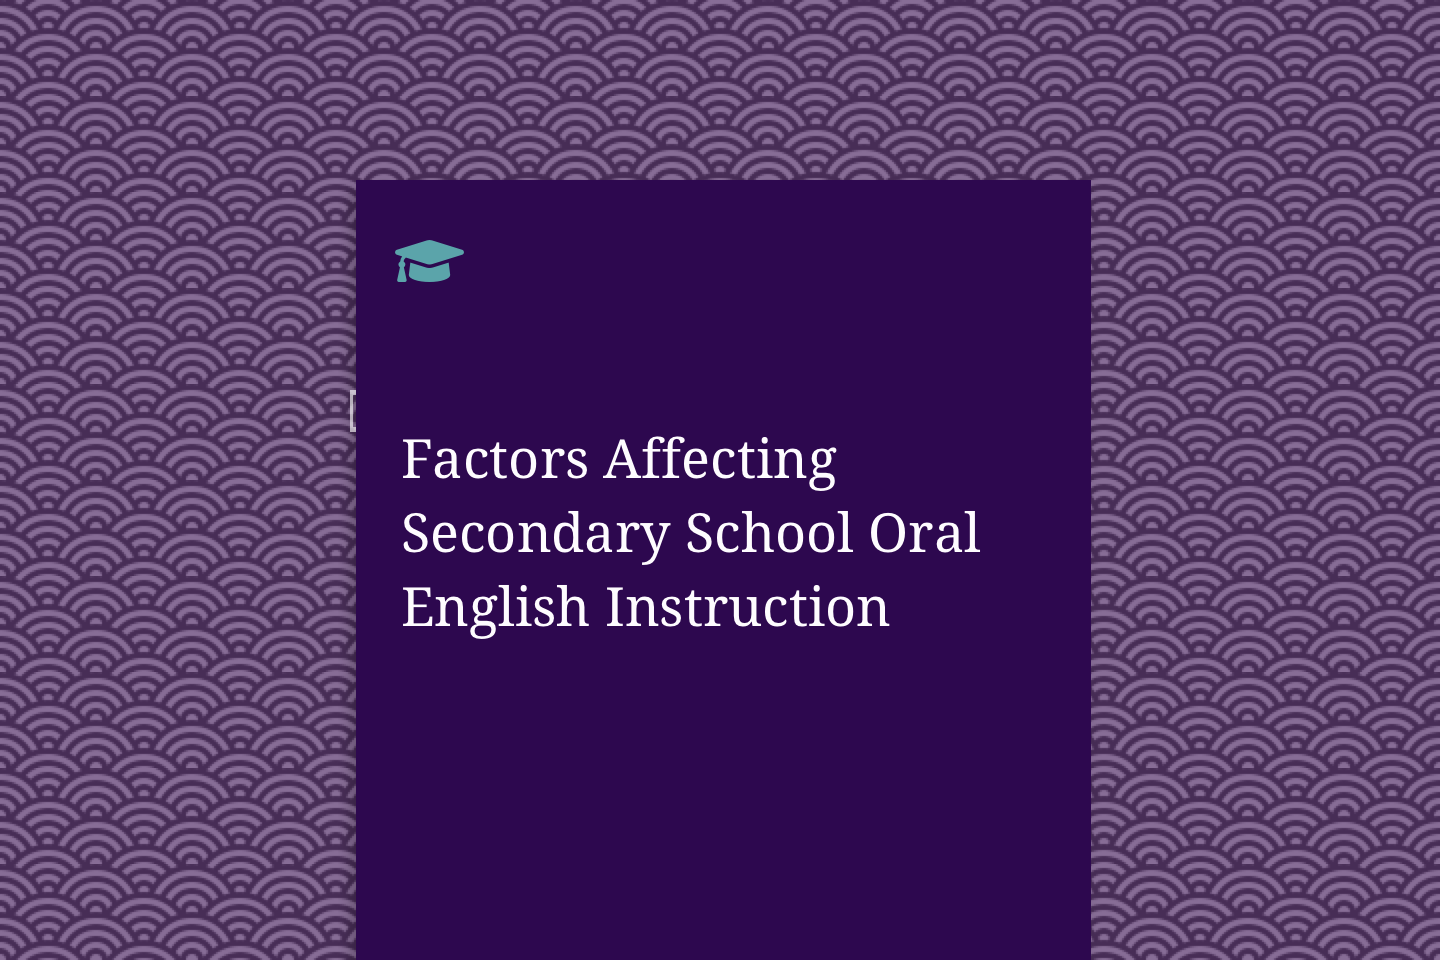 Factors Affecting Secondary School Oral English Instruction